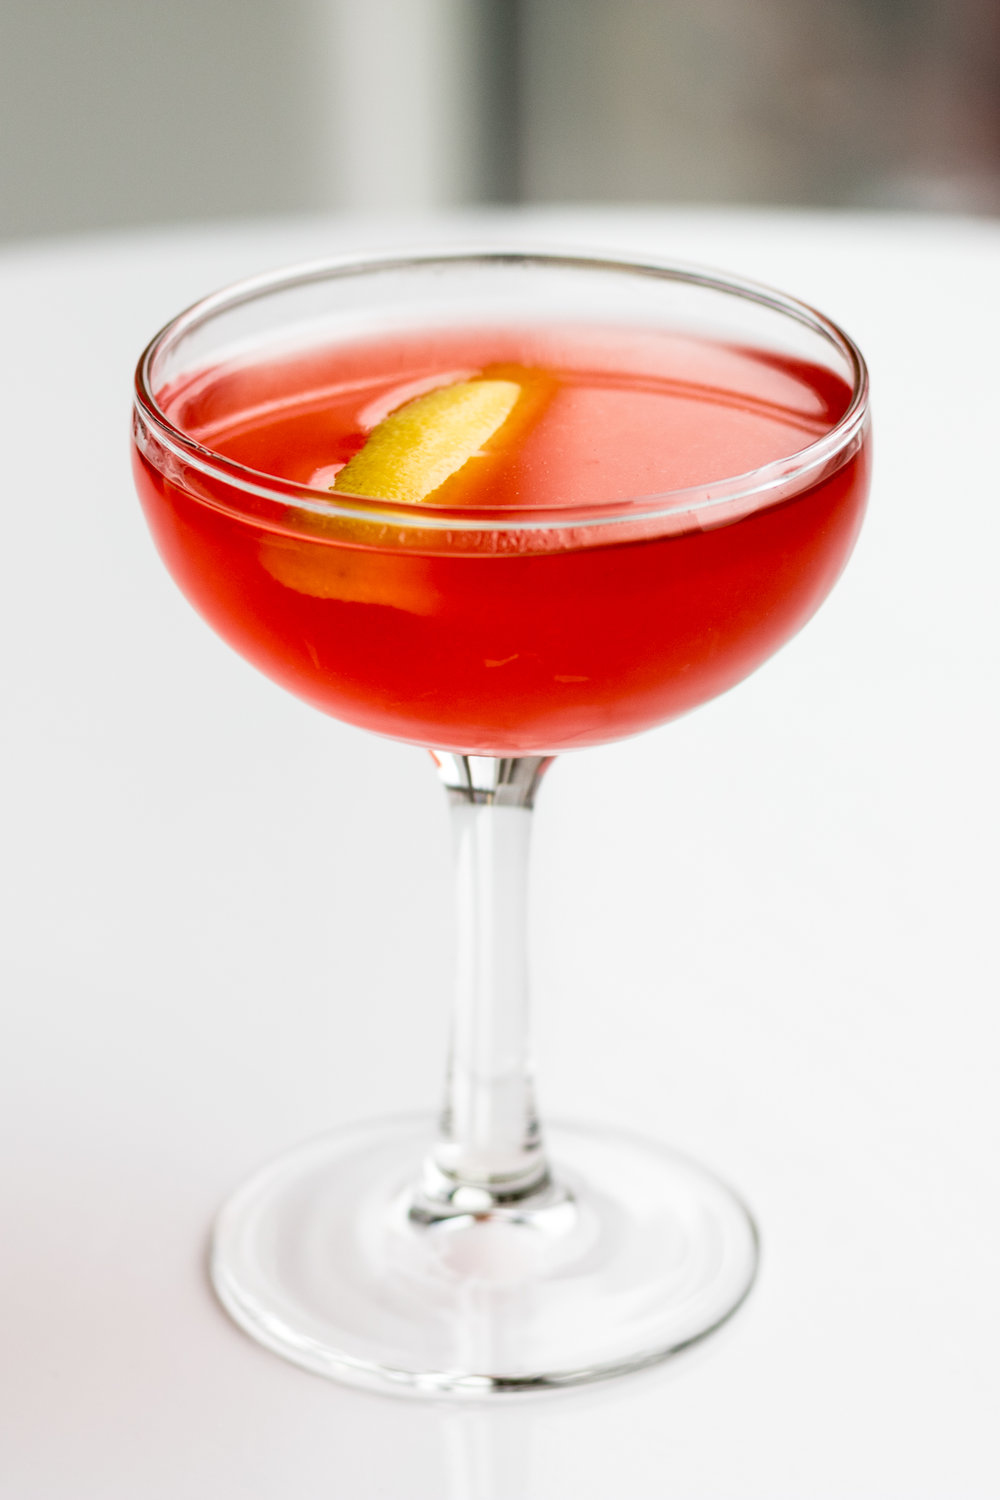 The Jasmine - 1 oz Gin3/4 oz Campari3/4 oz Fresh lemon juice1/2 oz Triple sec